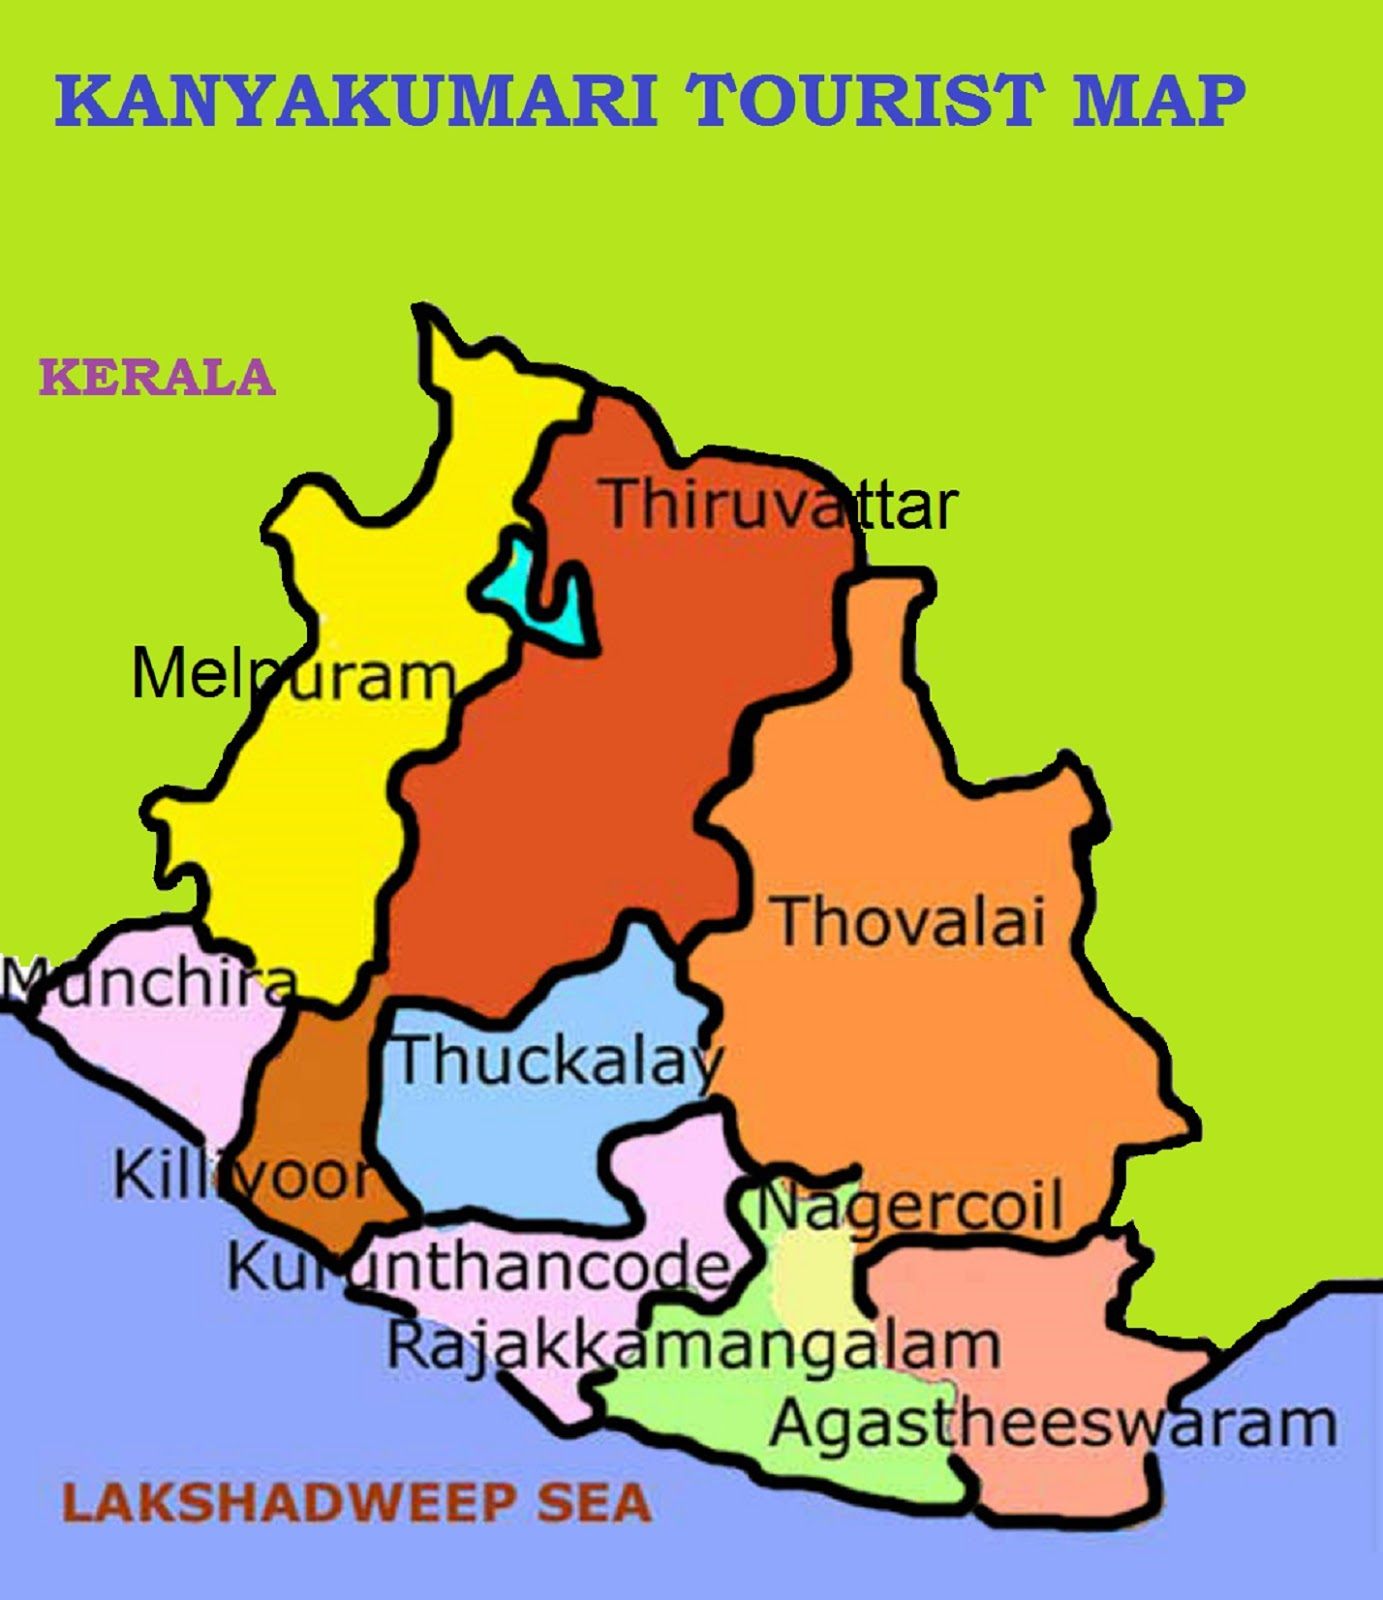 KANYAKUMARI TOURIST MAP – South India Map With Tourist Places